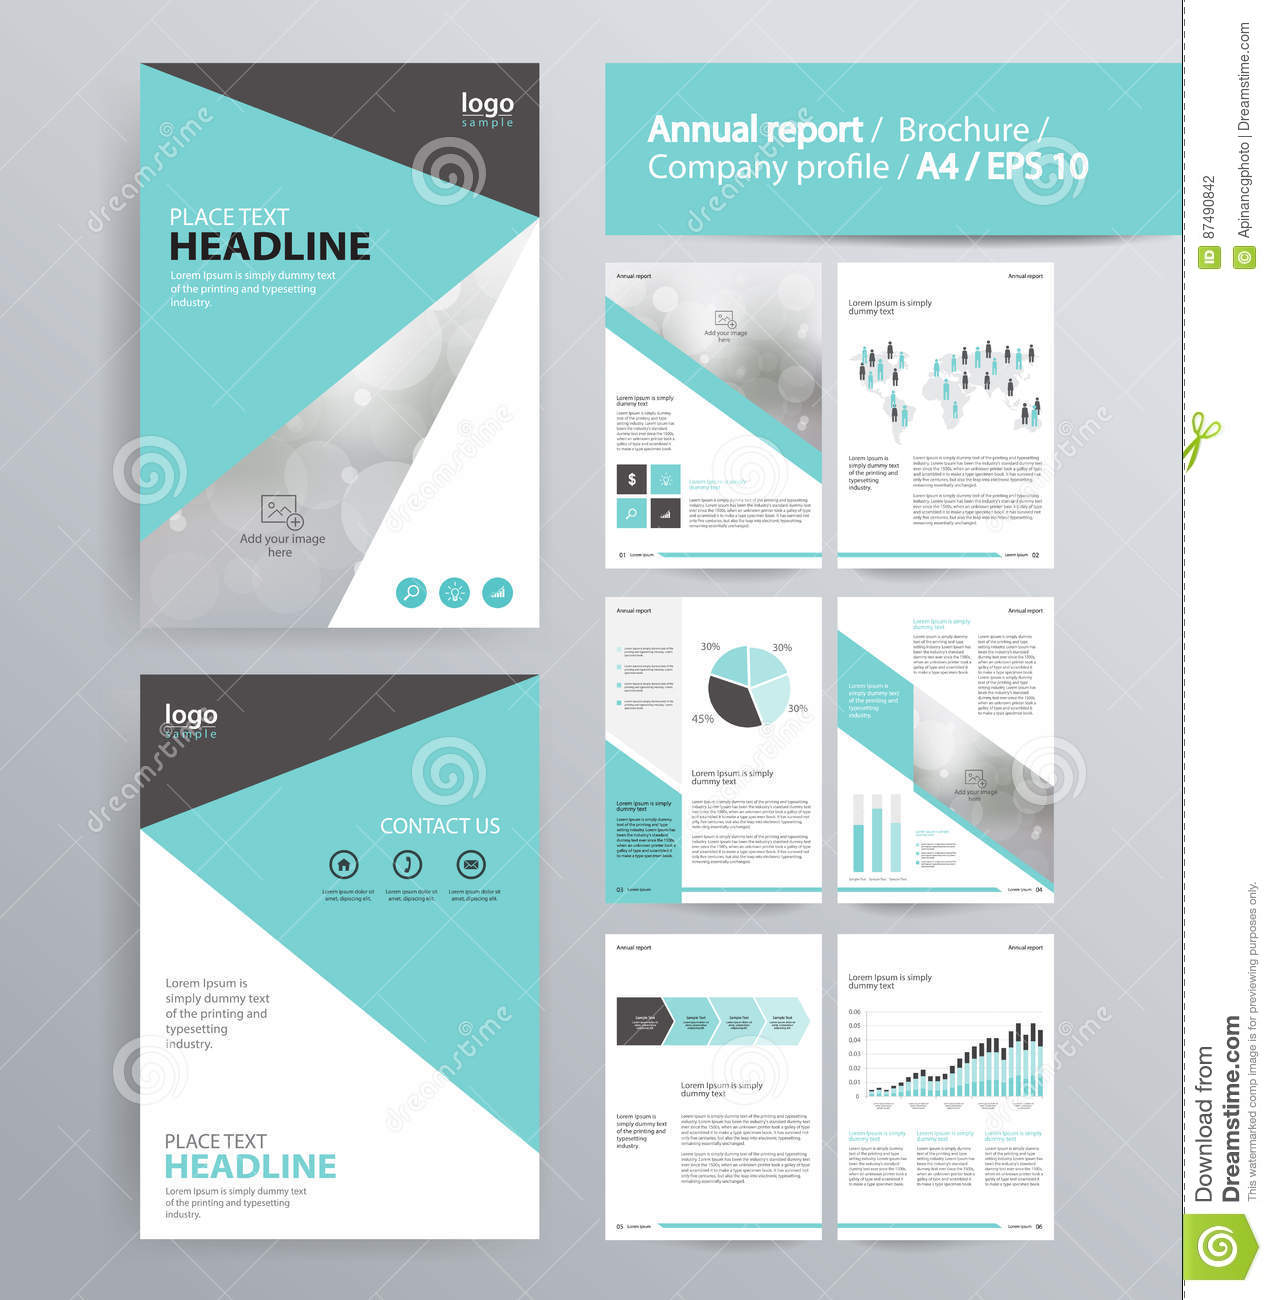 Page Layout For Company Profile  Annual Report  Brochure  And Flyer Layout Template  Stock